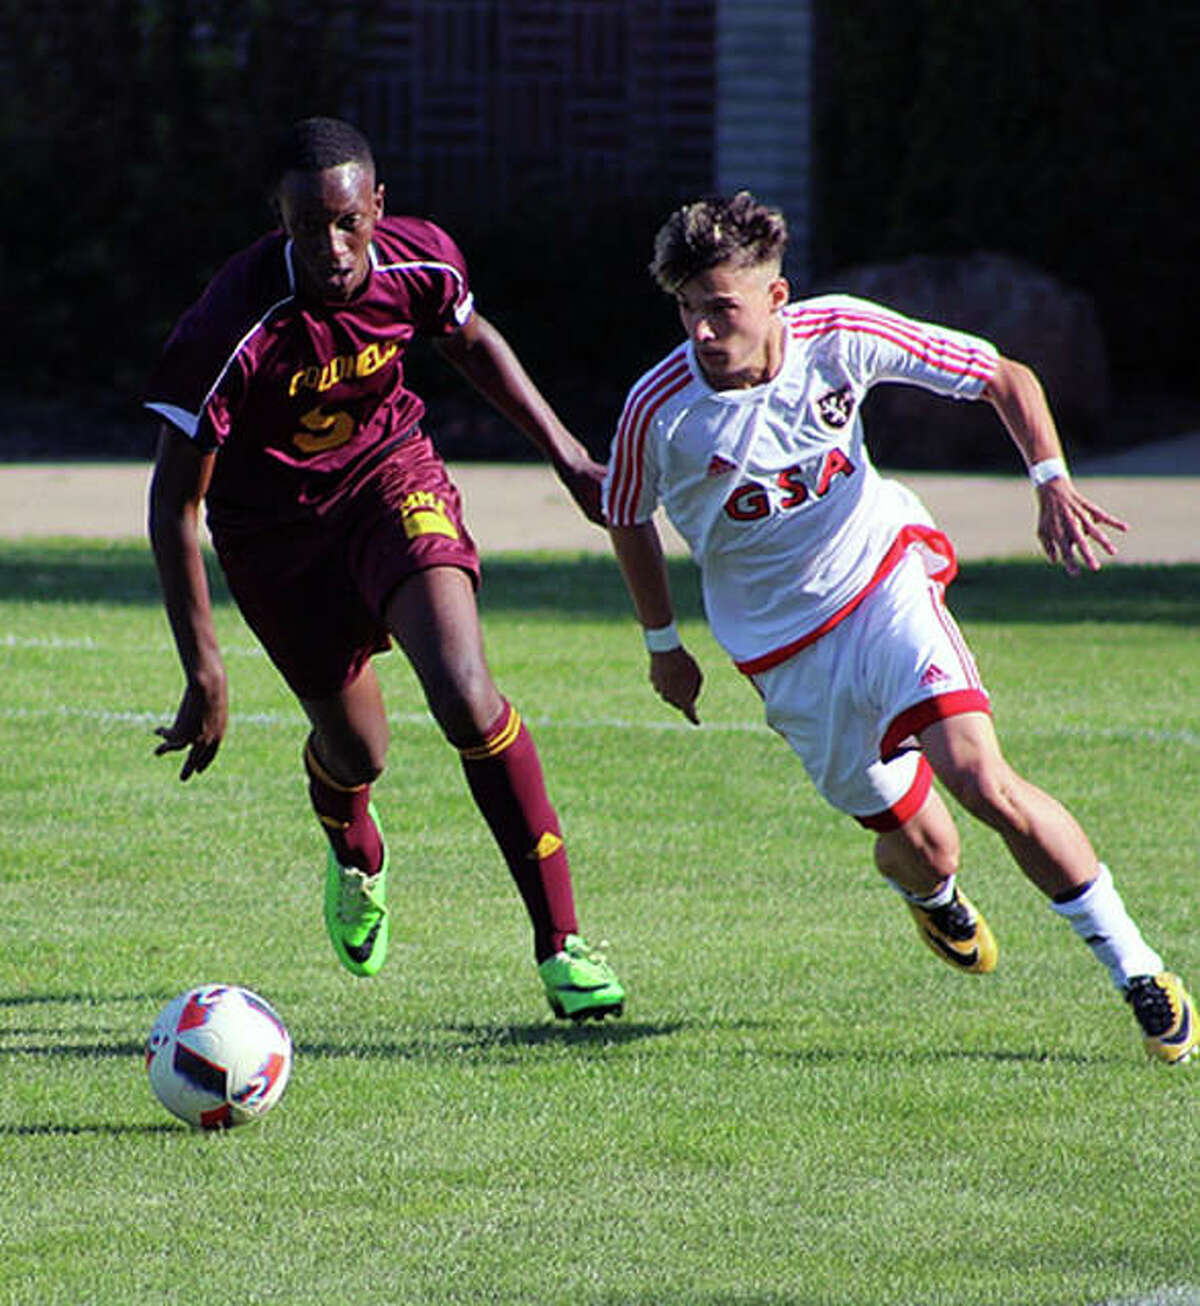 A Gateway Legacy Christian Academy player, right, moves the ball during a game last season.